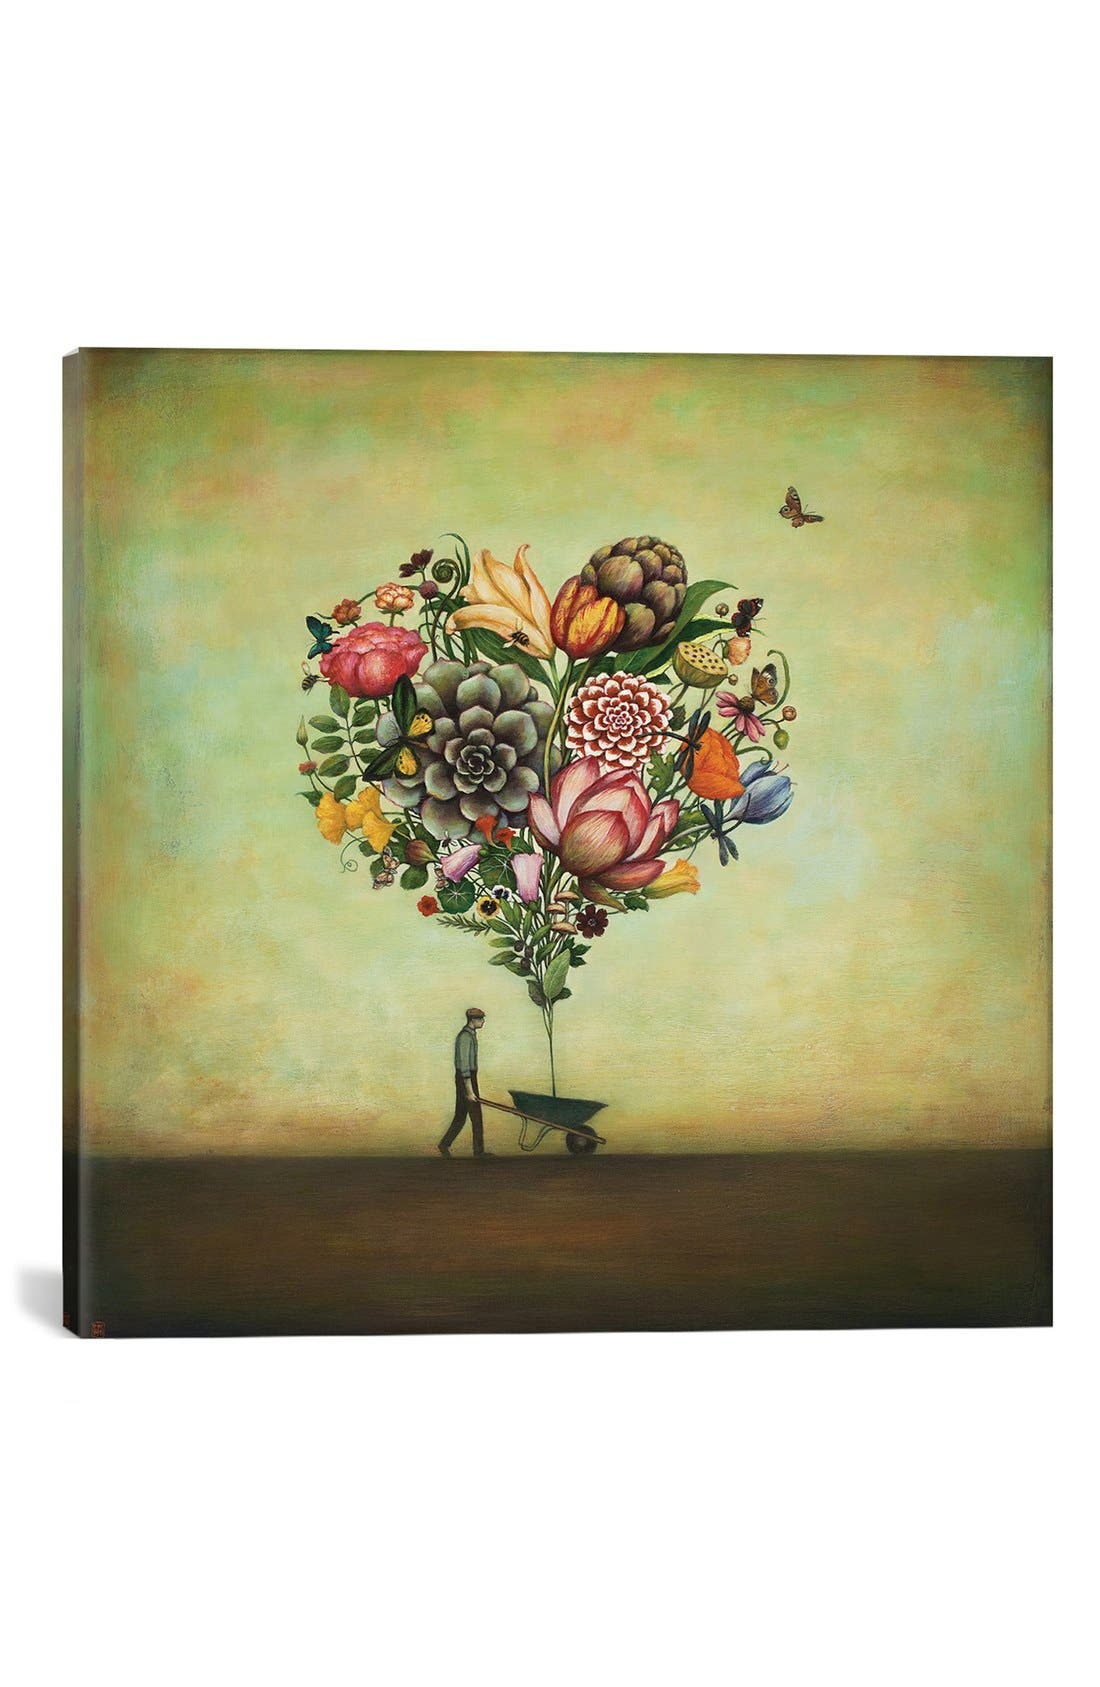 Alternate Image 1 Selected - iCanvas 'Big Heart Botany' Giclée Print Canvas Art